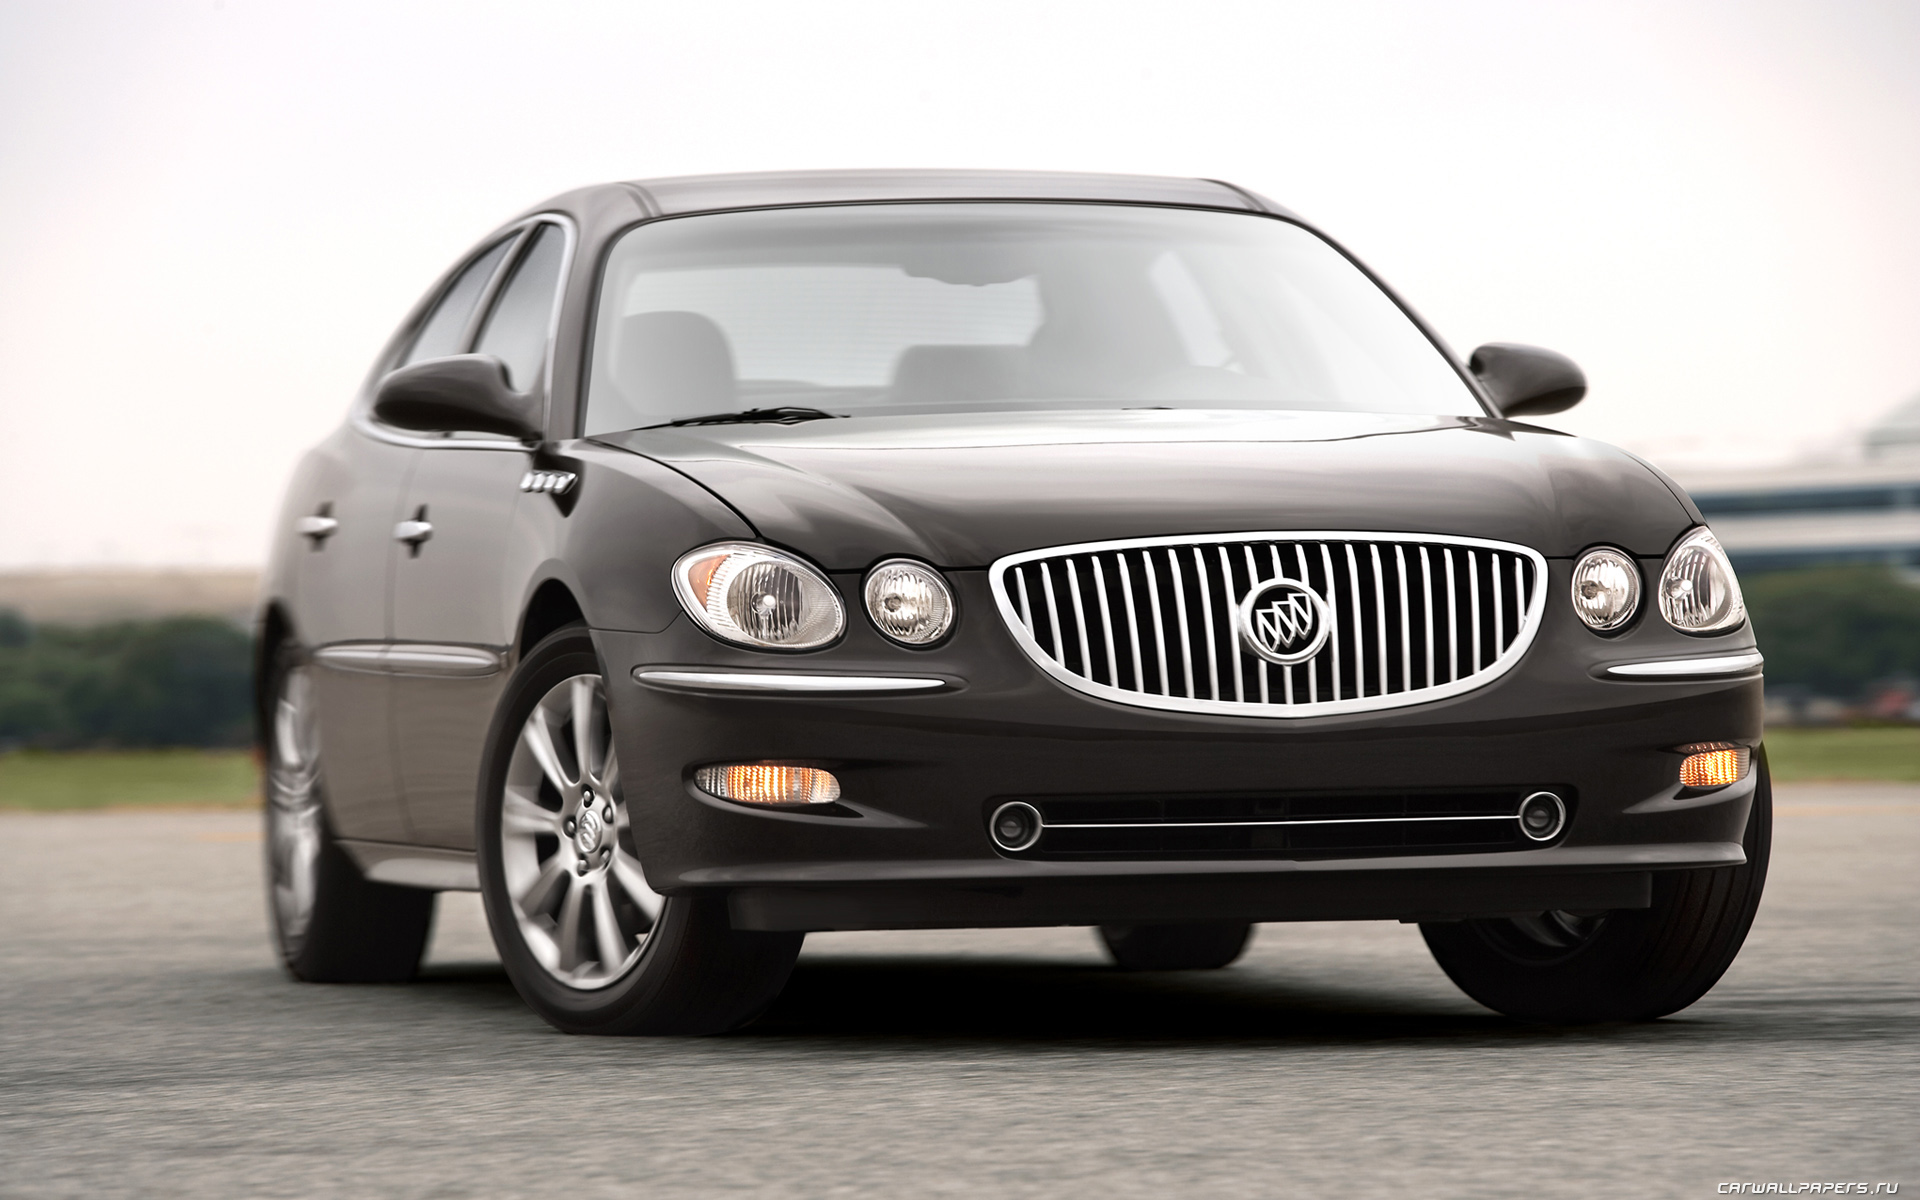 Buick Lacrosse 2002: Review, Amazing Pictures and Images ...